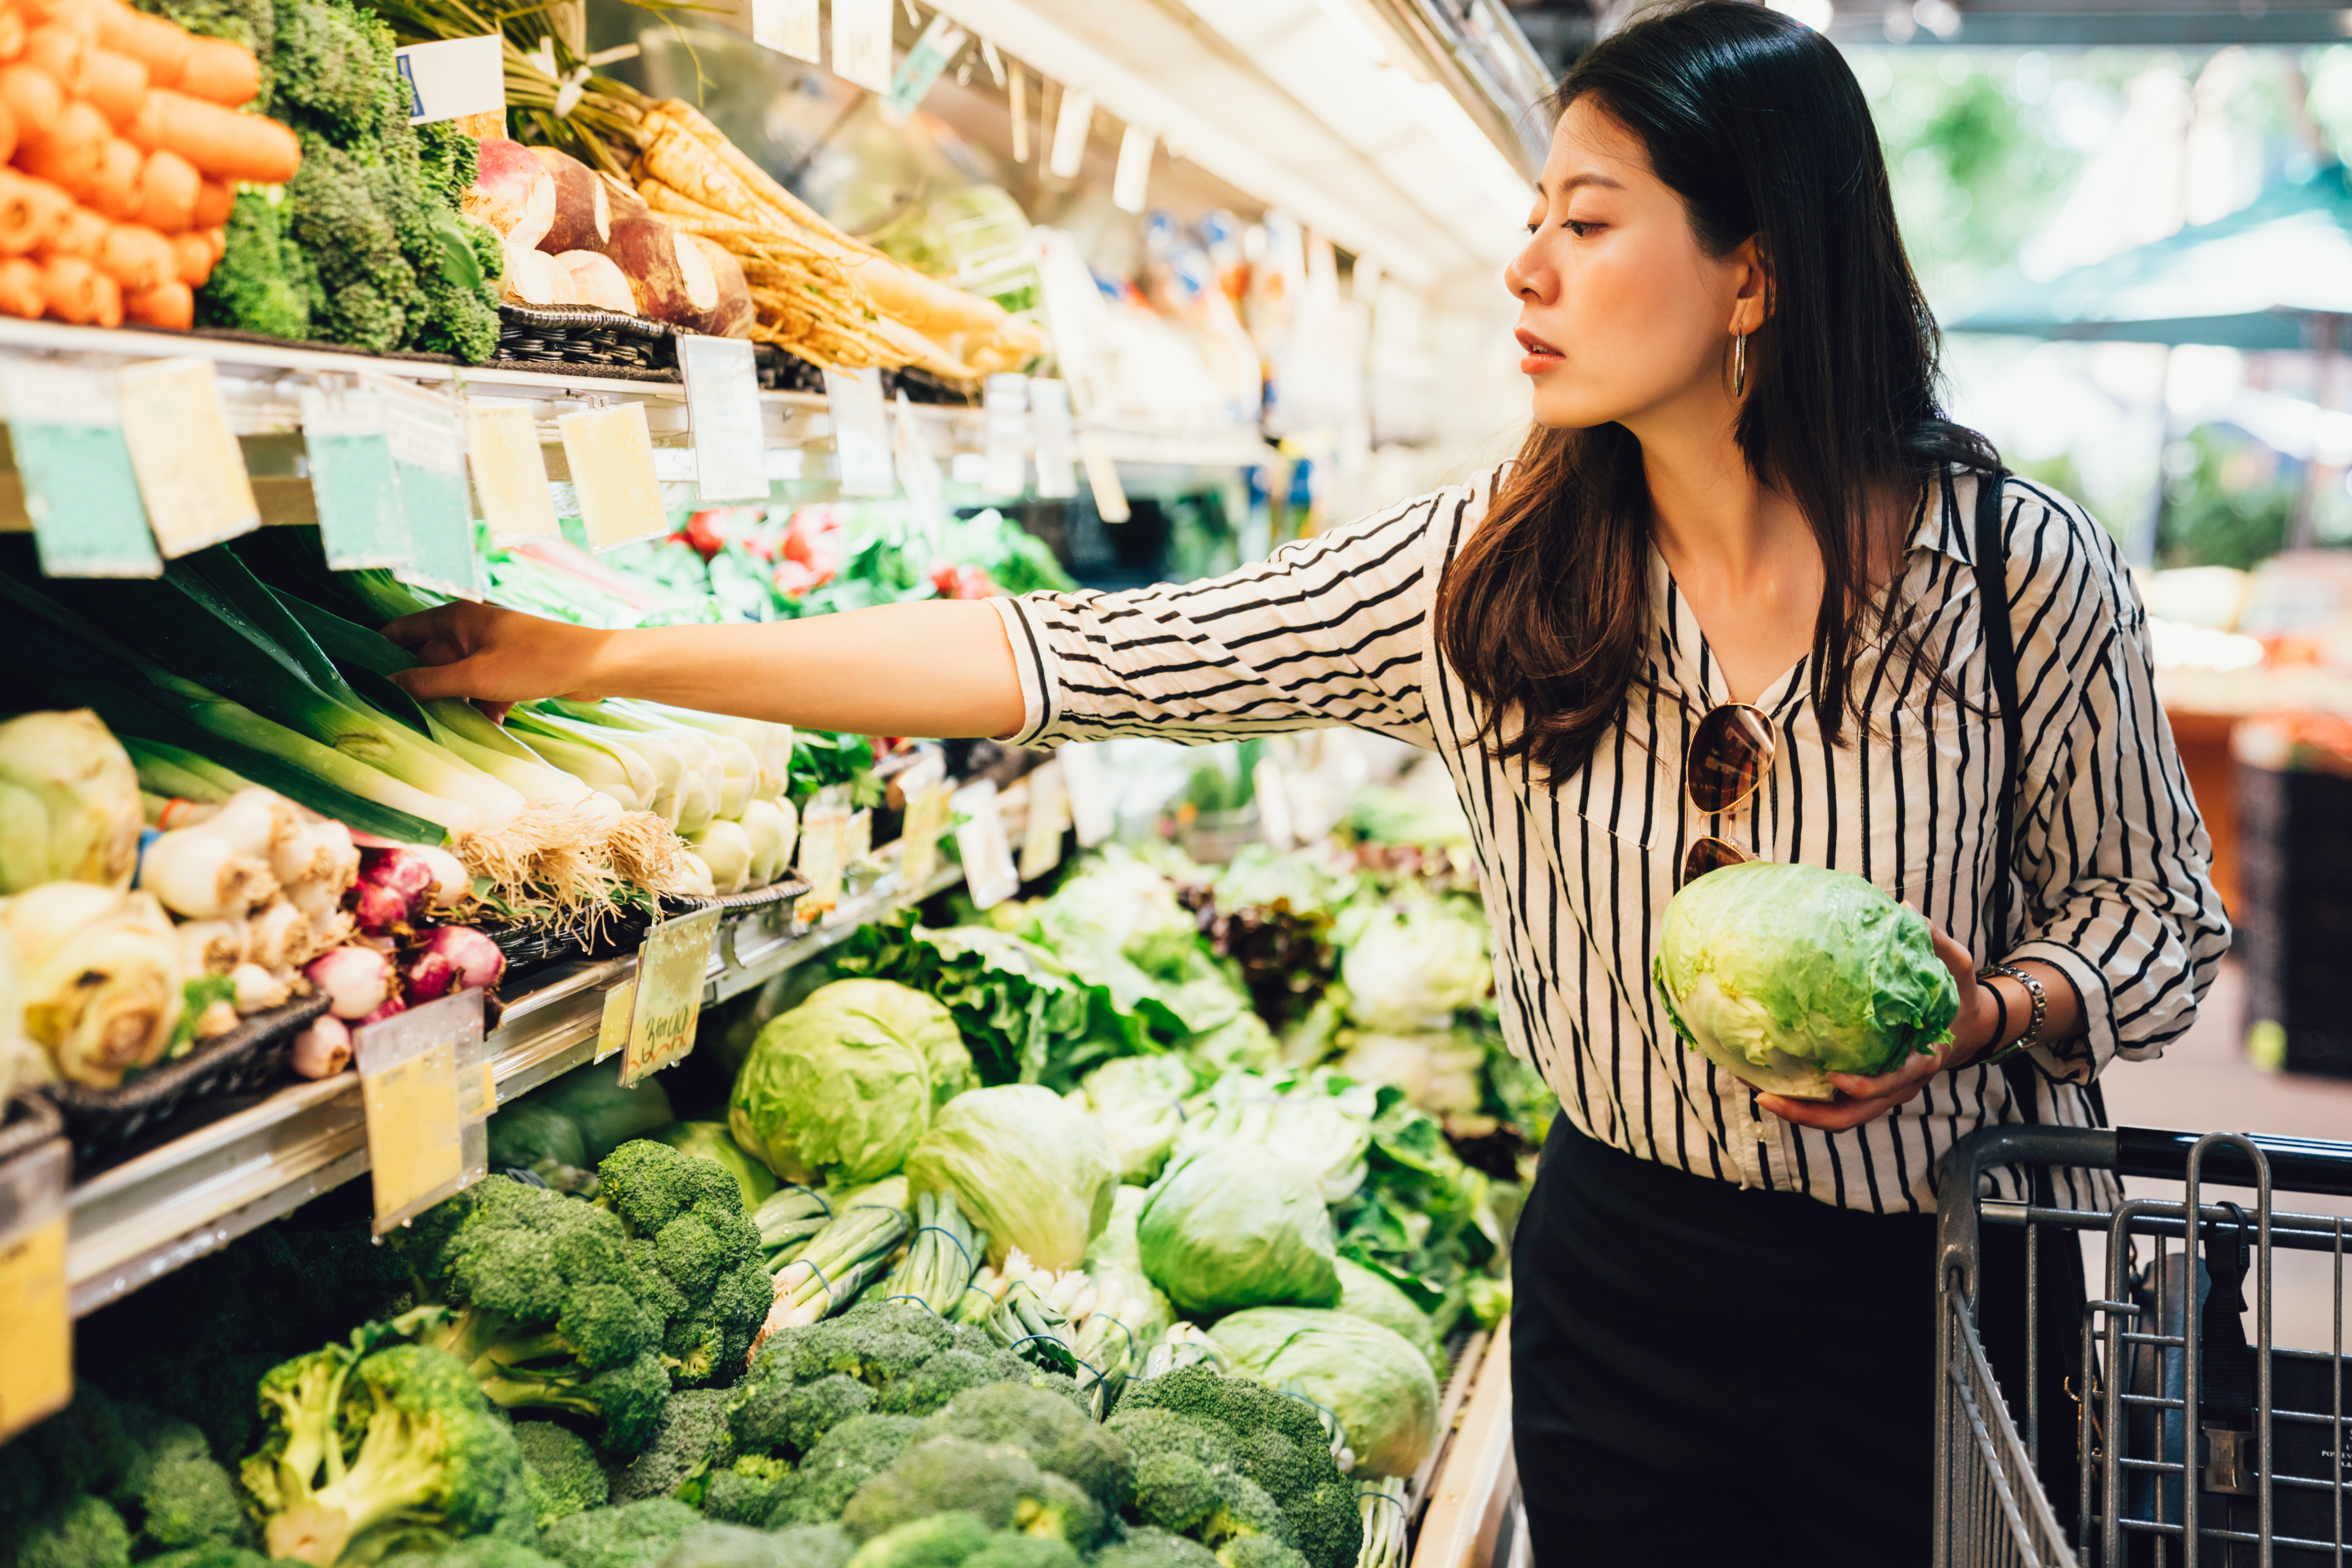 Shoppers are feeling the price hikes at the grocery store, particularly withcountless product shortagesandwidespread supply chain disruptions.